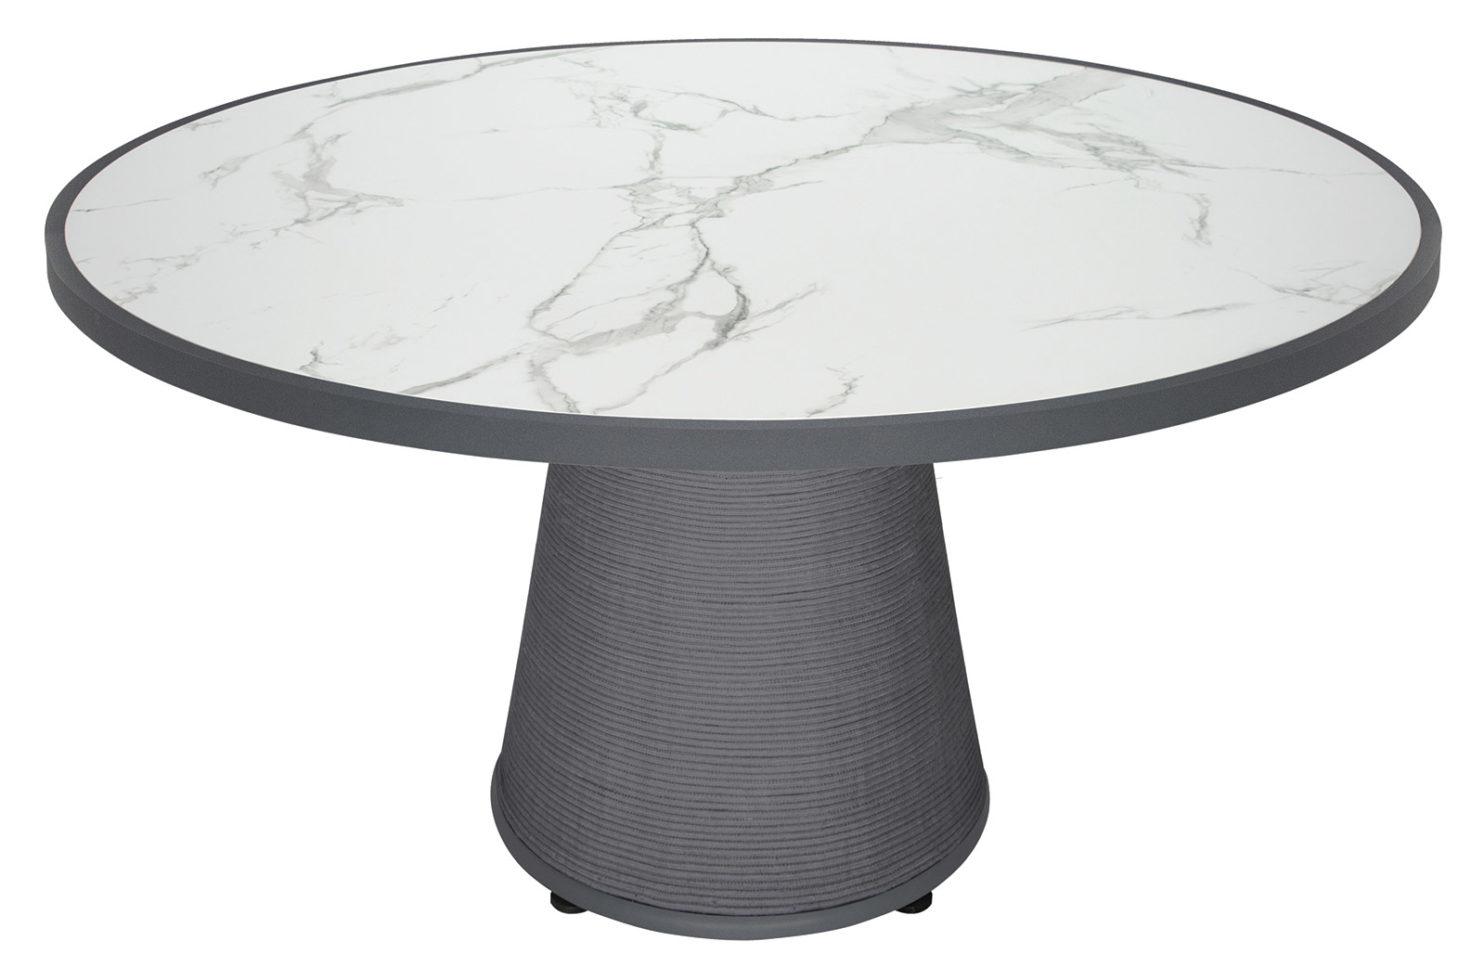 Archipelago alexander table 620FT100P2BBT DWA 1 3Q